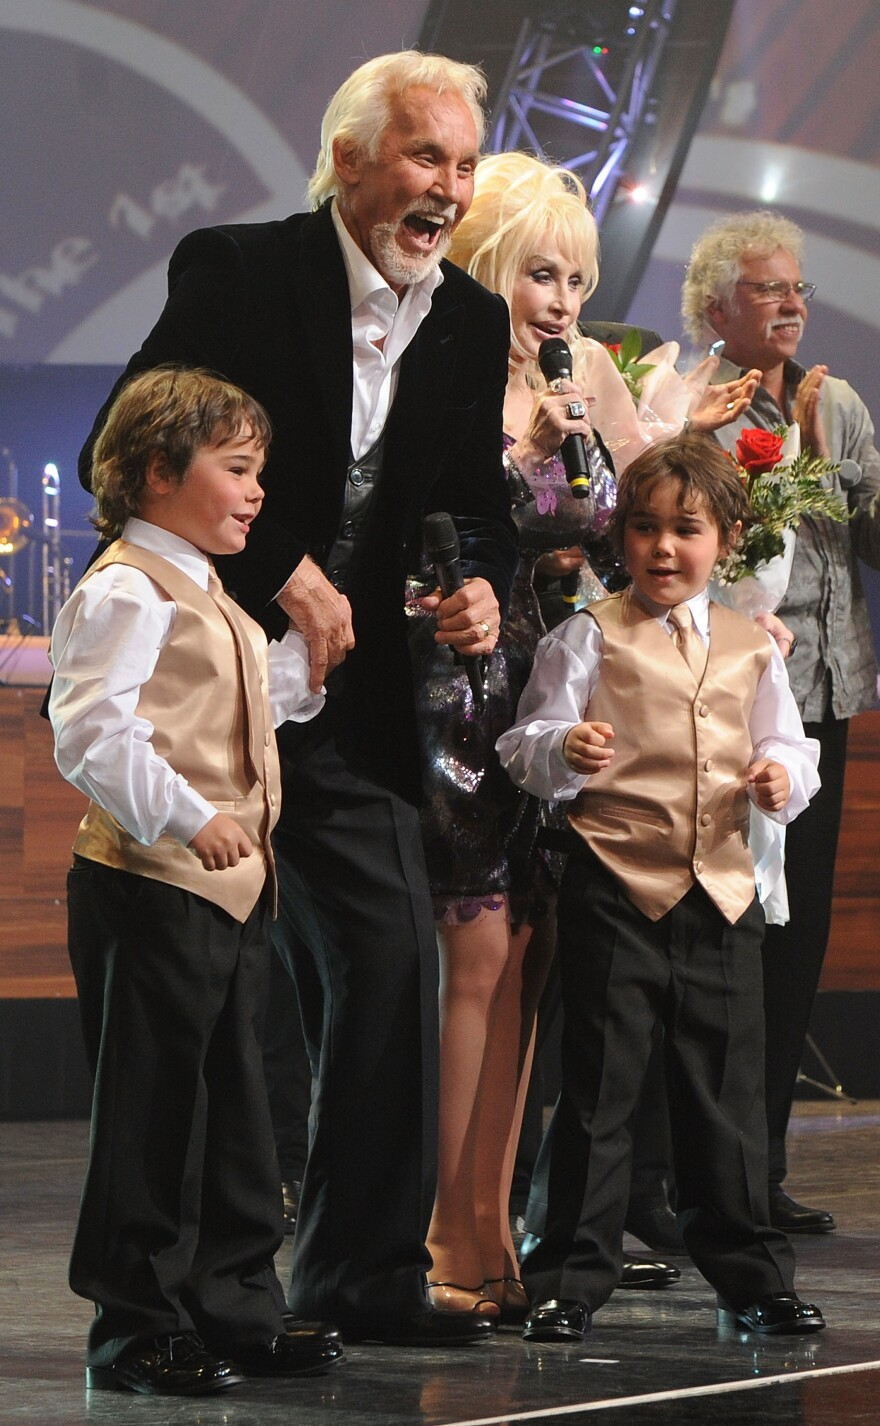 Kenny Rogers, Dolly Parton and Rogers's twin boys perform at the MGM Grand at Foxwoods in Ledyard Center, Conn., in 2010.